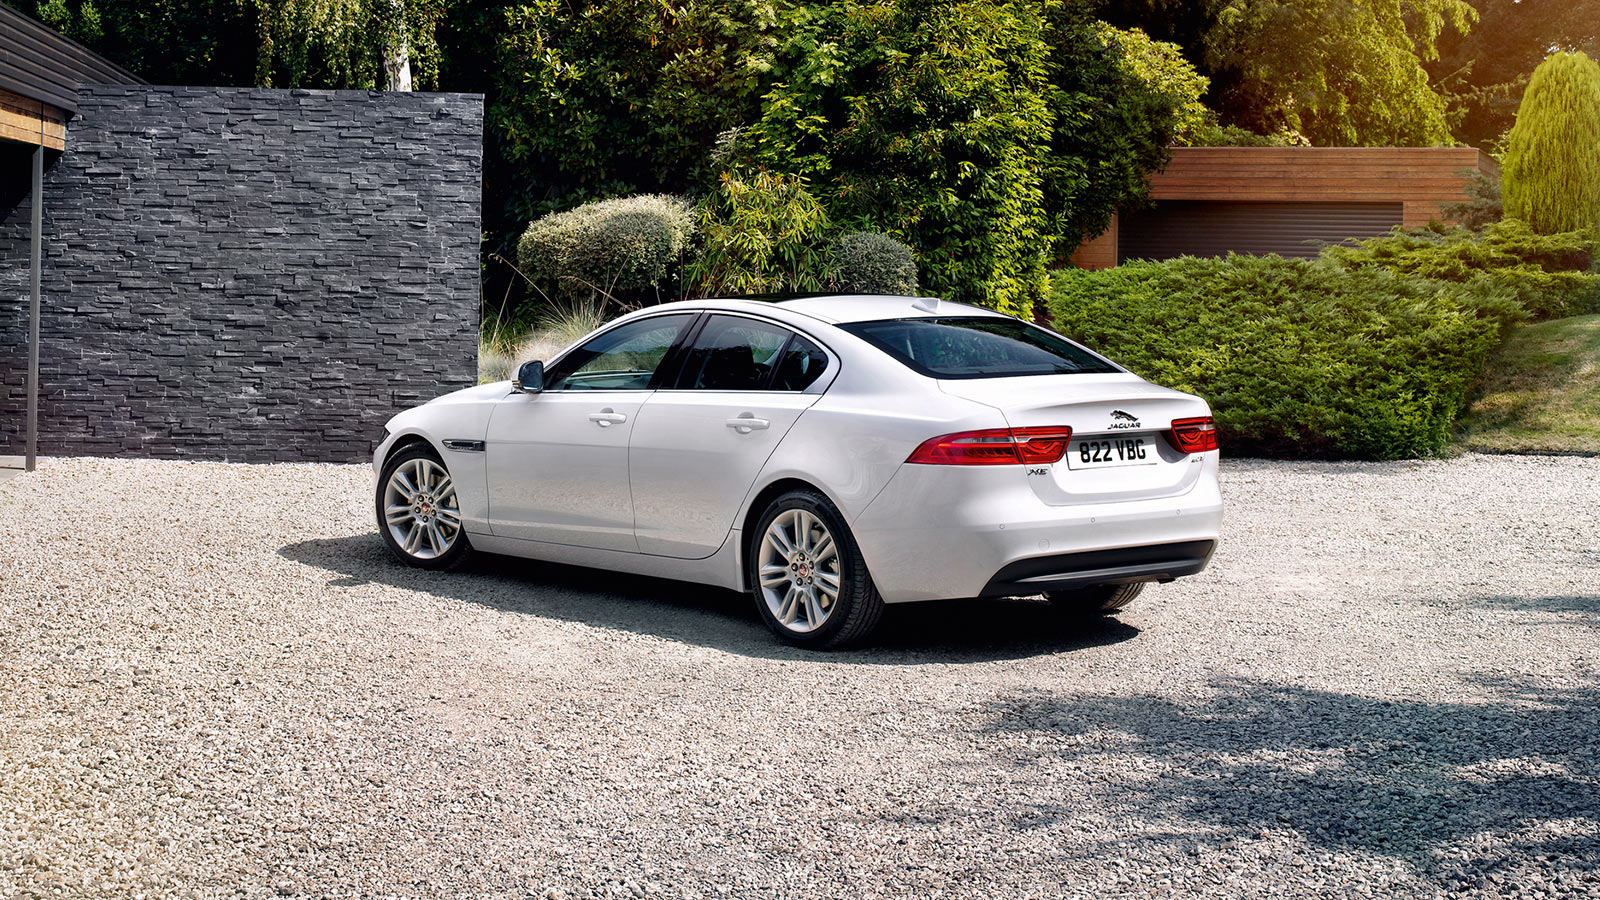 White jaguar xe parked indfront of a house.